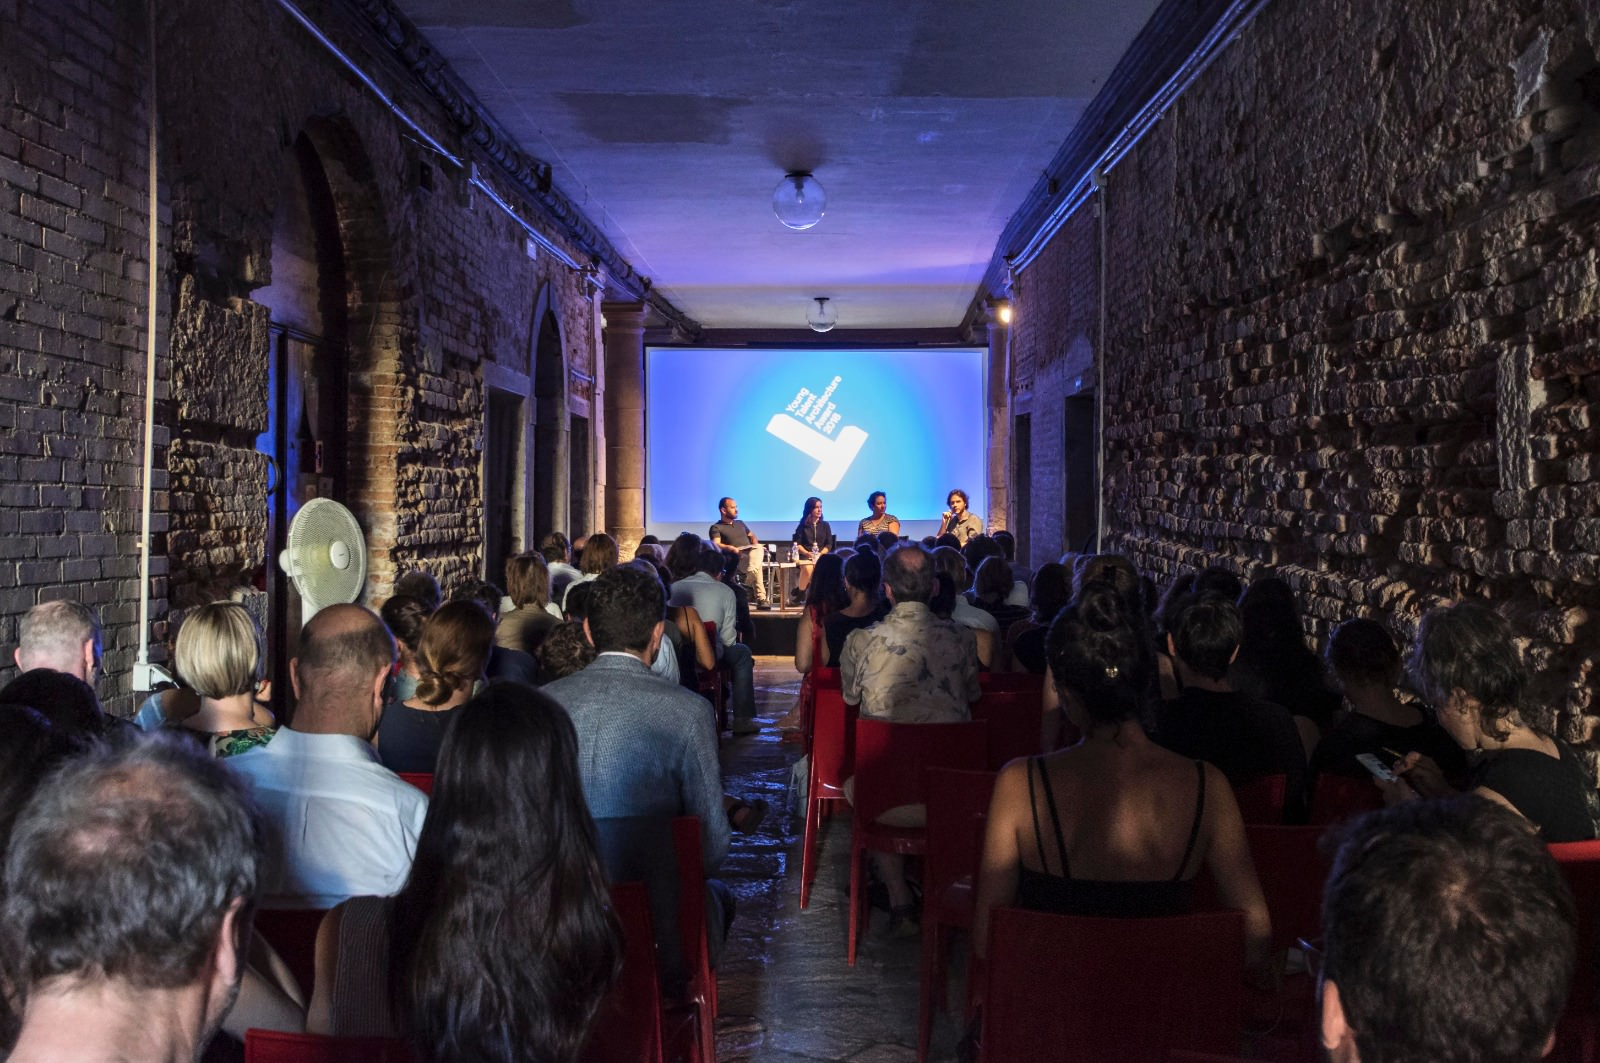 Jansen Preisverleihung Young Talent Architect Award an der Architektur Biennale 2018 in Venedig